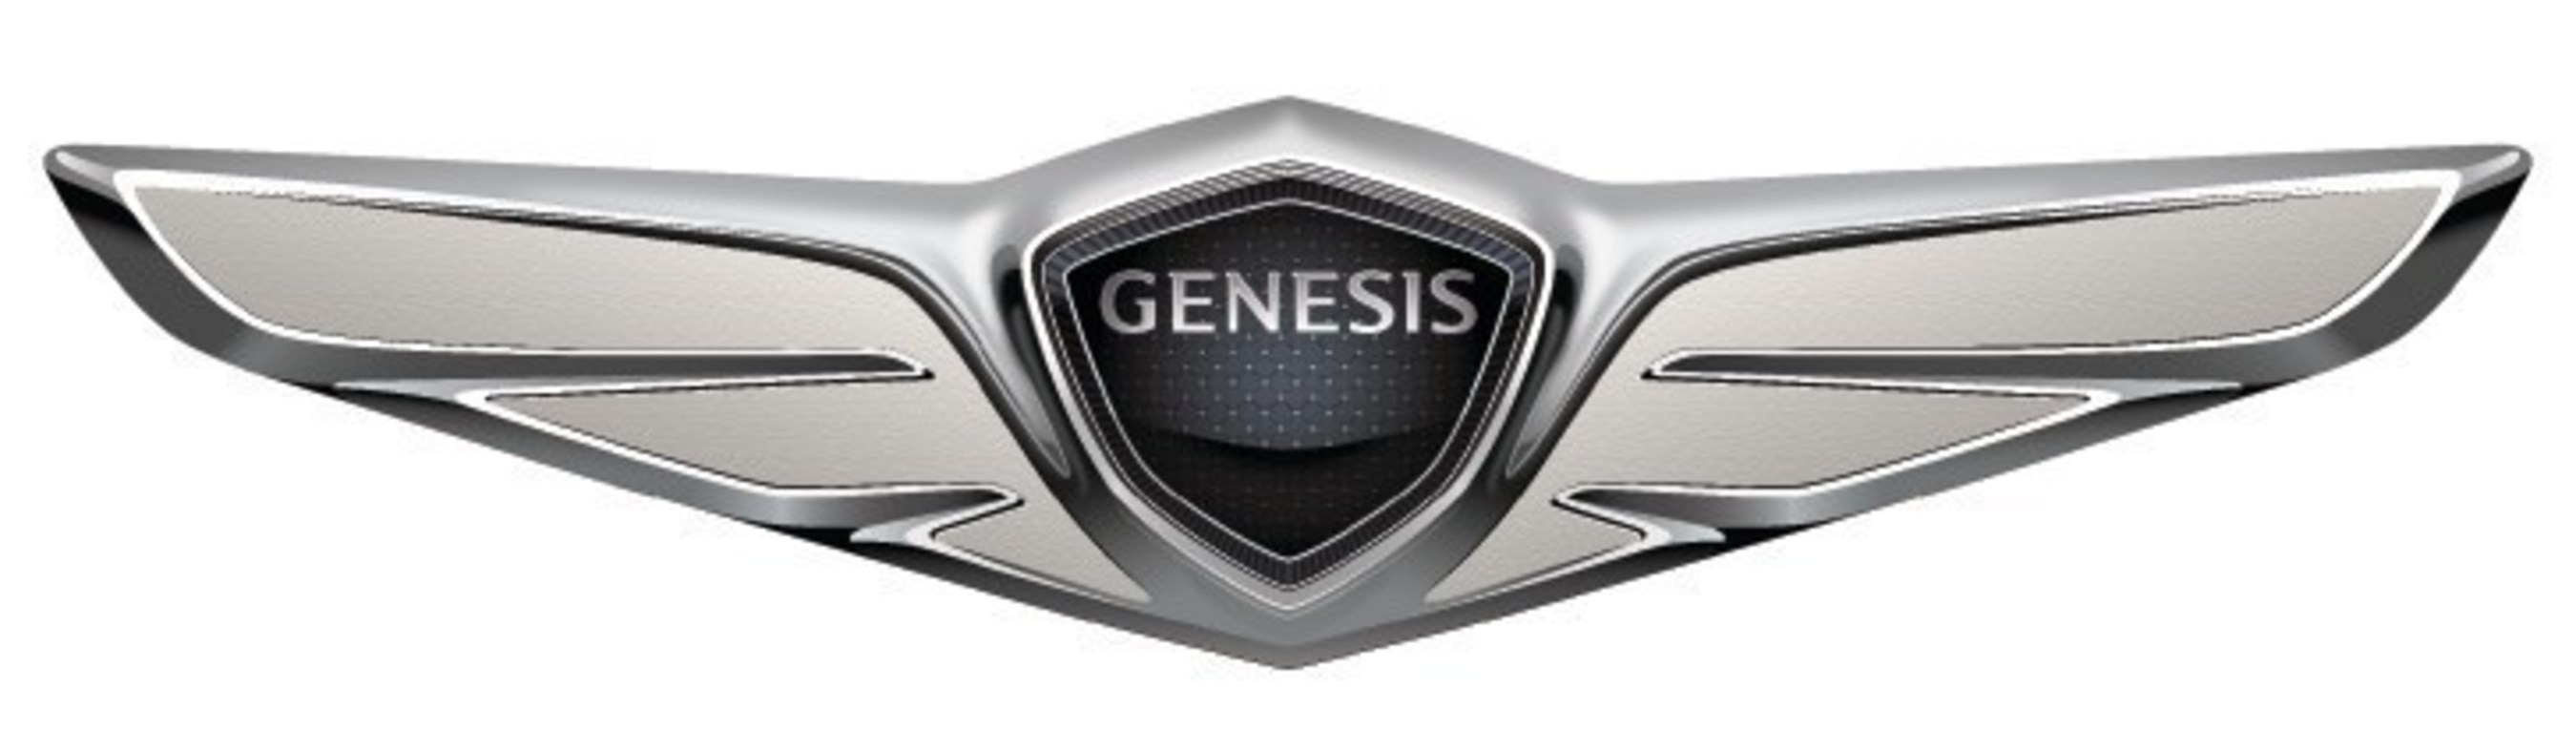 Genesis Car Logo >> Genesis G90 Revealed As Finalist For 2017 North American Car Of The Year